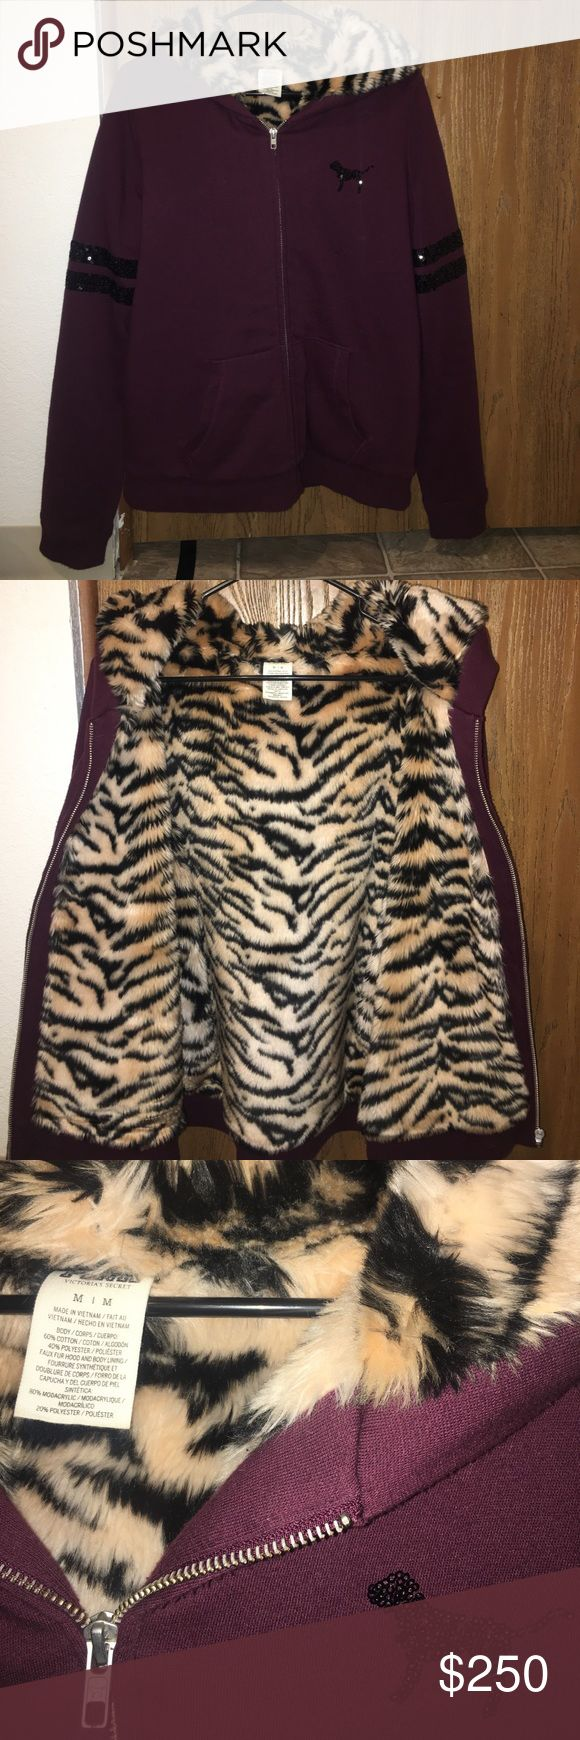 Victoria's Secret pink tiger fur hoodie repost I'm debating on selling this.... like new, worn up to 2-3 times max!! This is limited edition and goes for a lot. Just seeing if anyone would be interested. I'd maybe trade but it would have to be for a few items. This is the price as of now. This sells for A LOT! Trading price is $200+- depending. PINK Victoria's Secret Sweaters